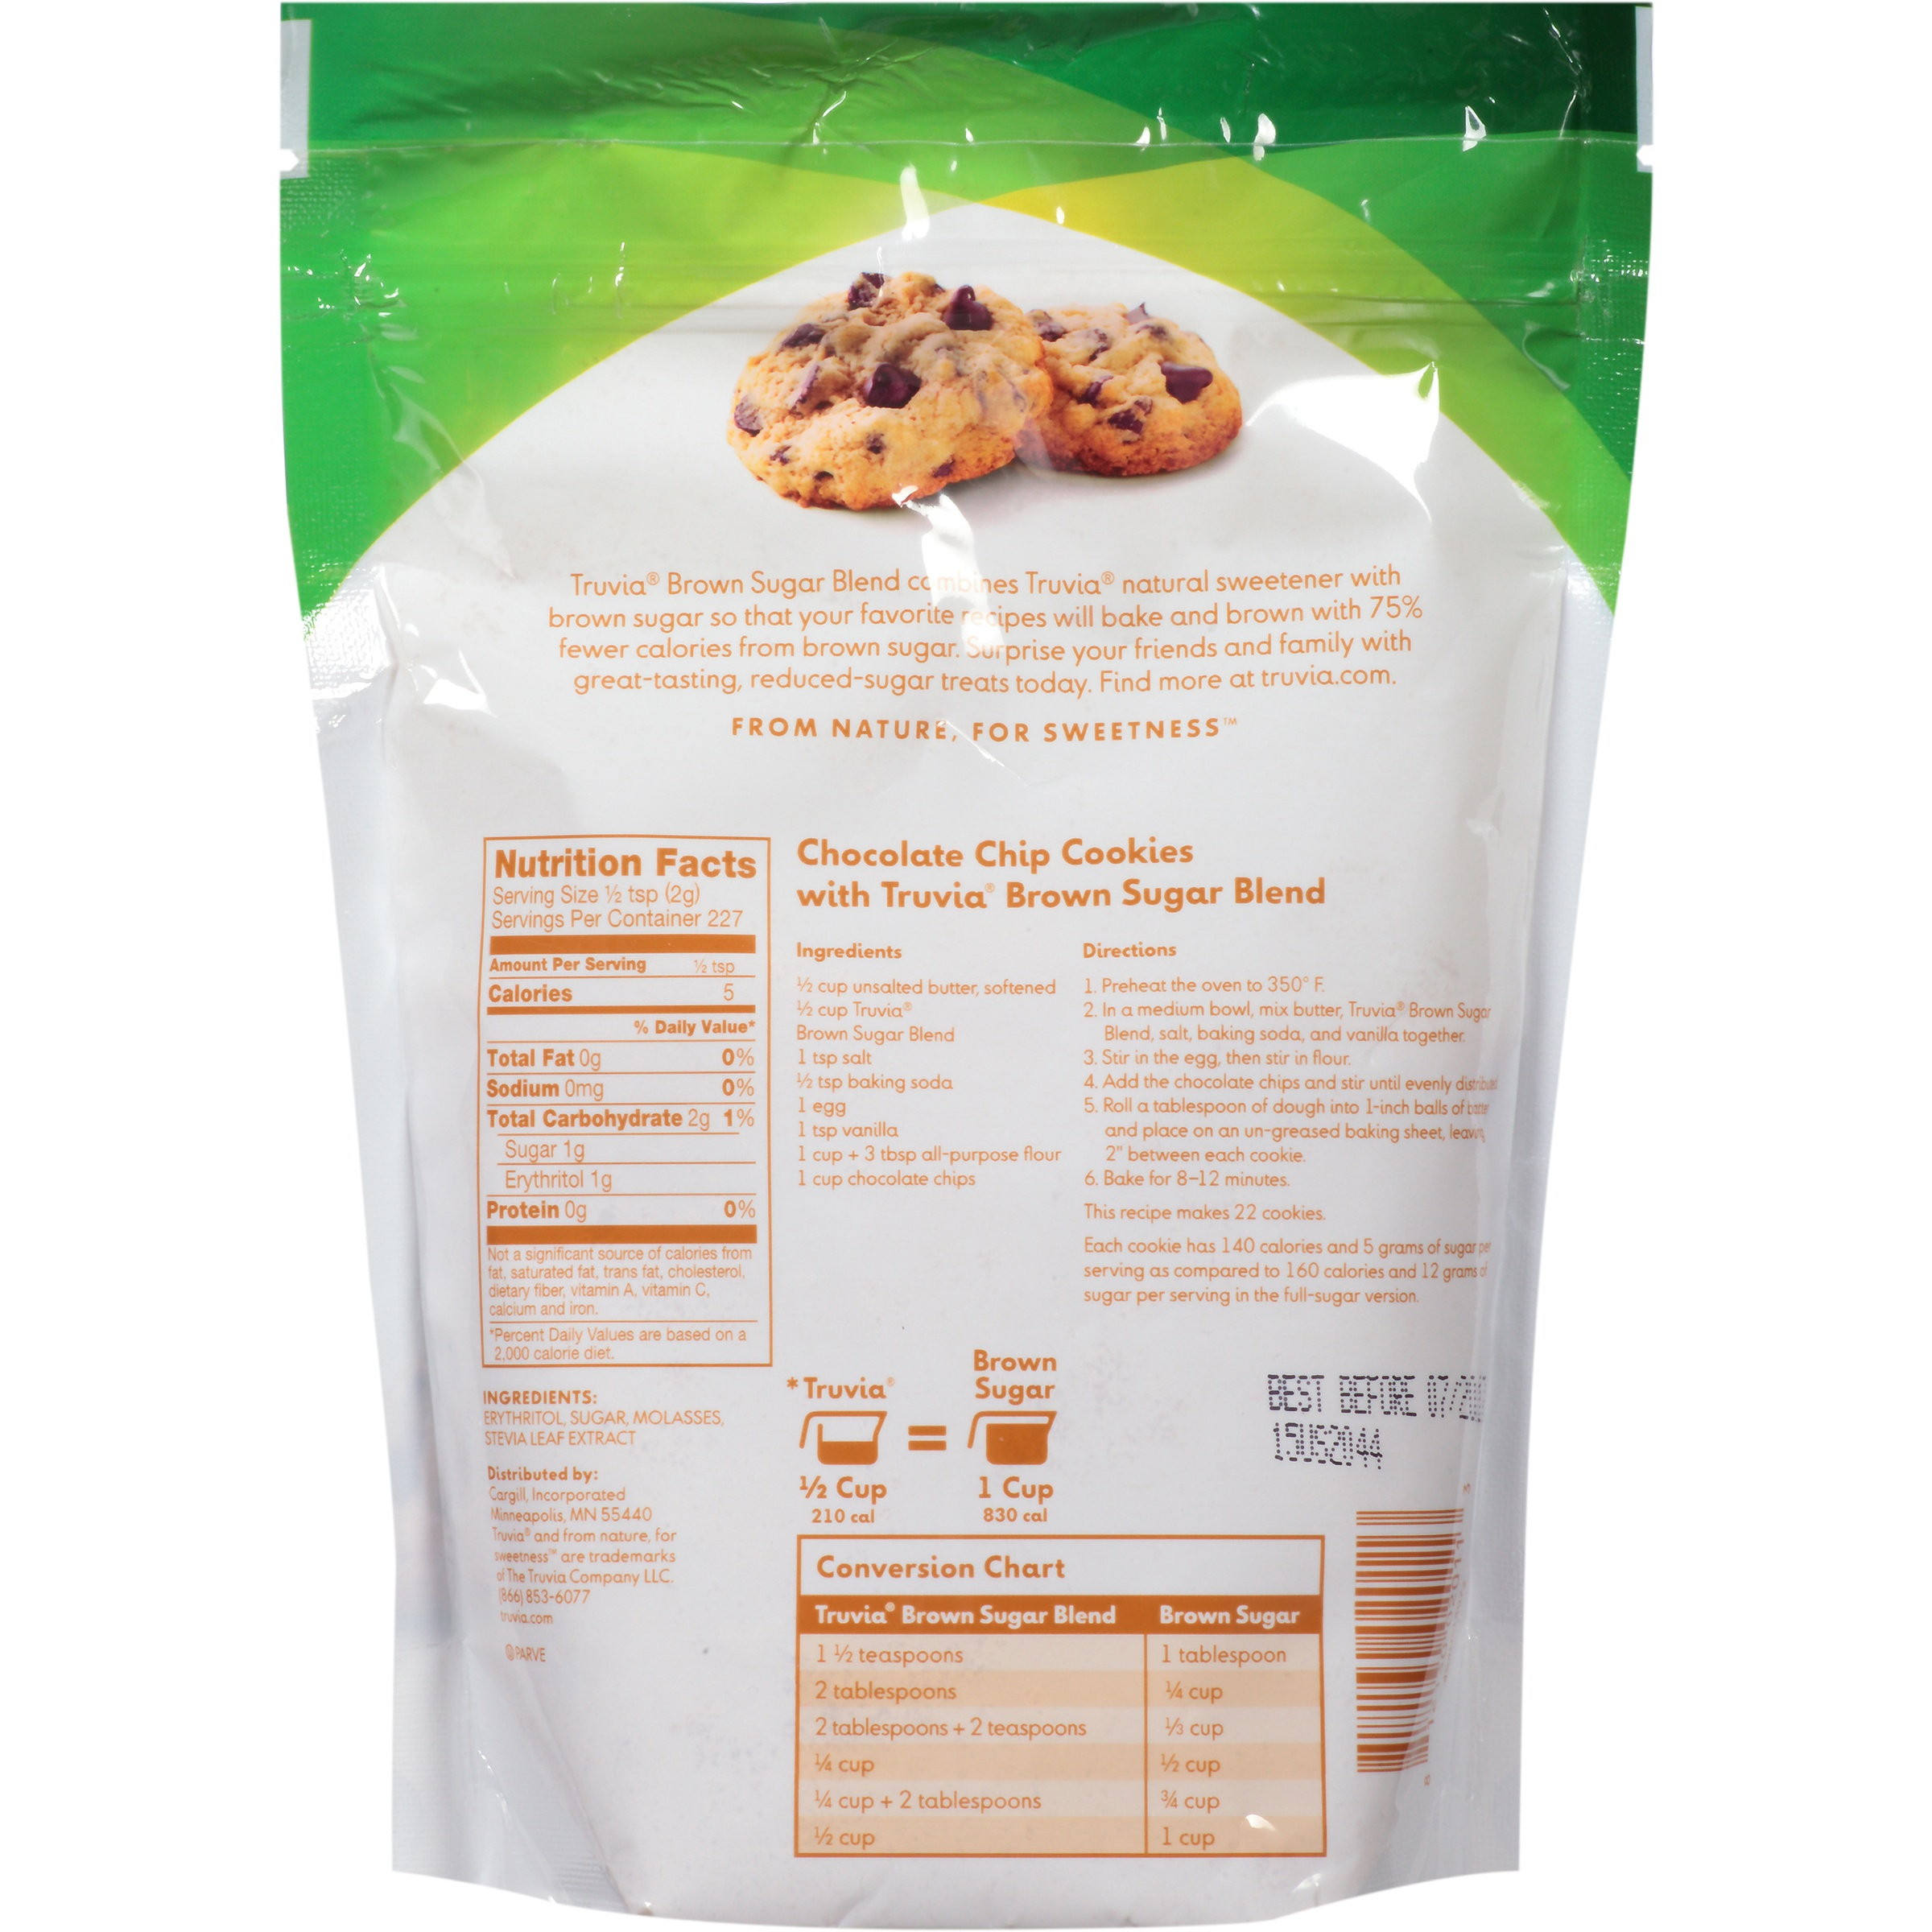 Truvia Brown Sugar Blend 10 Lb Bag Walmart